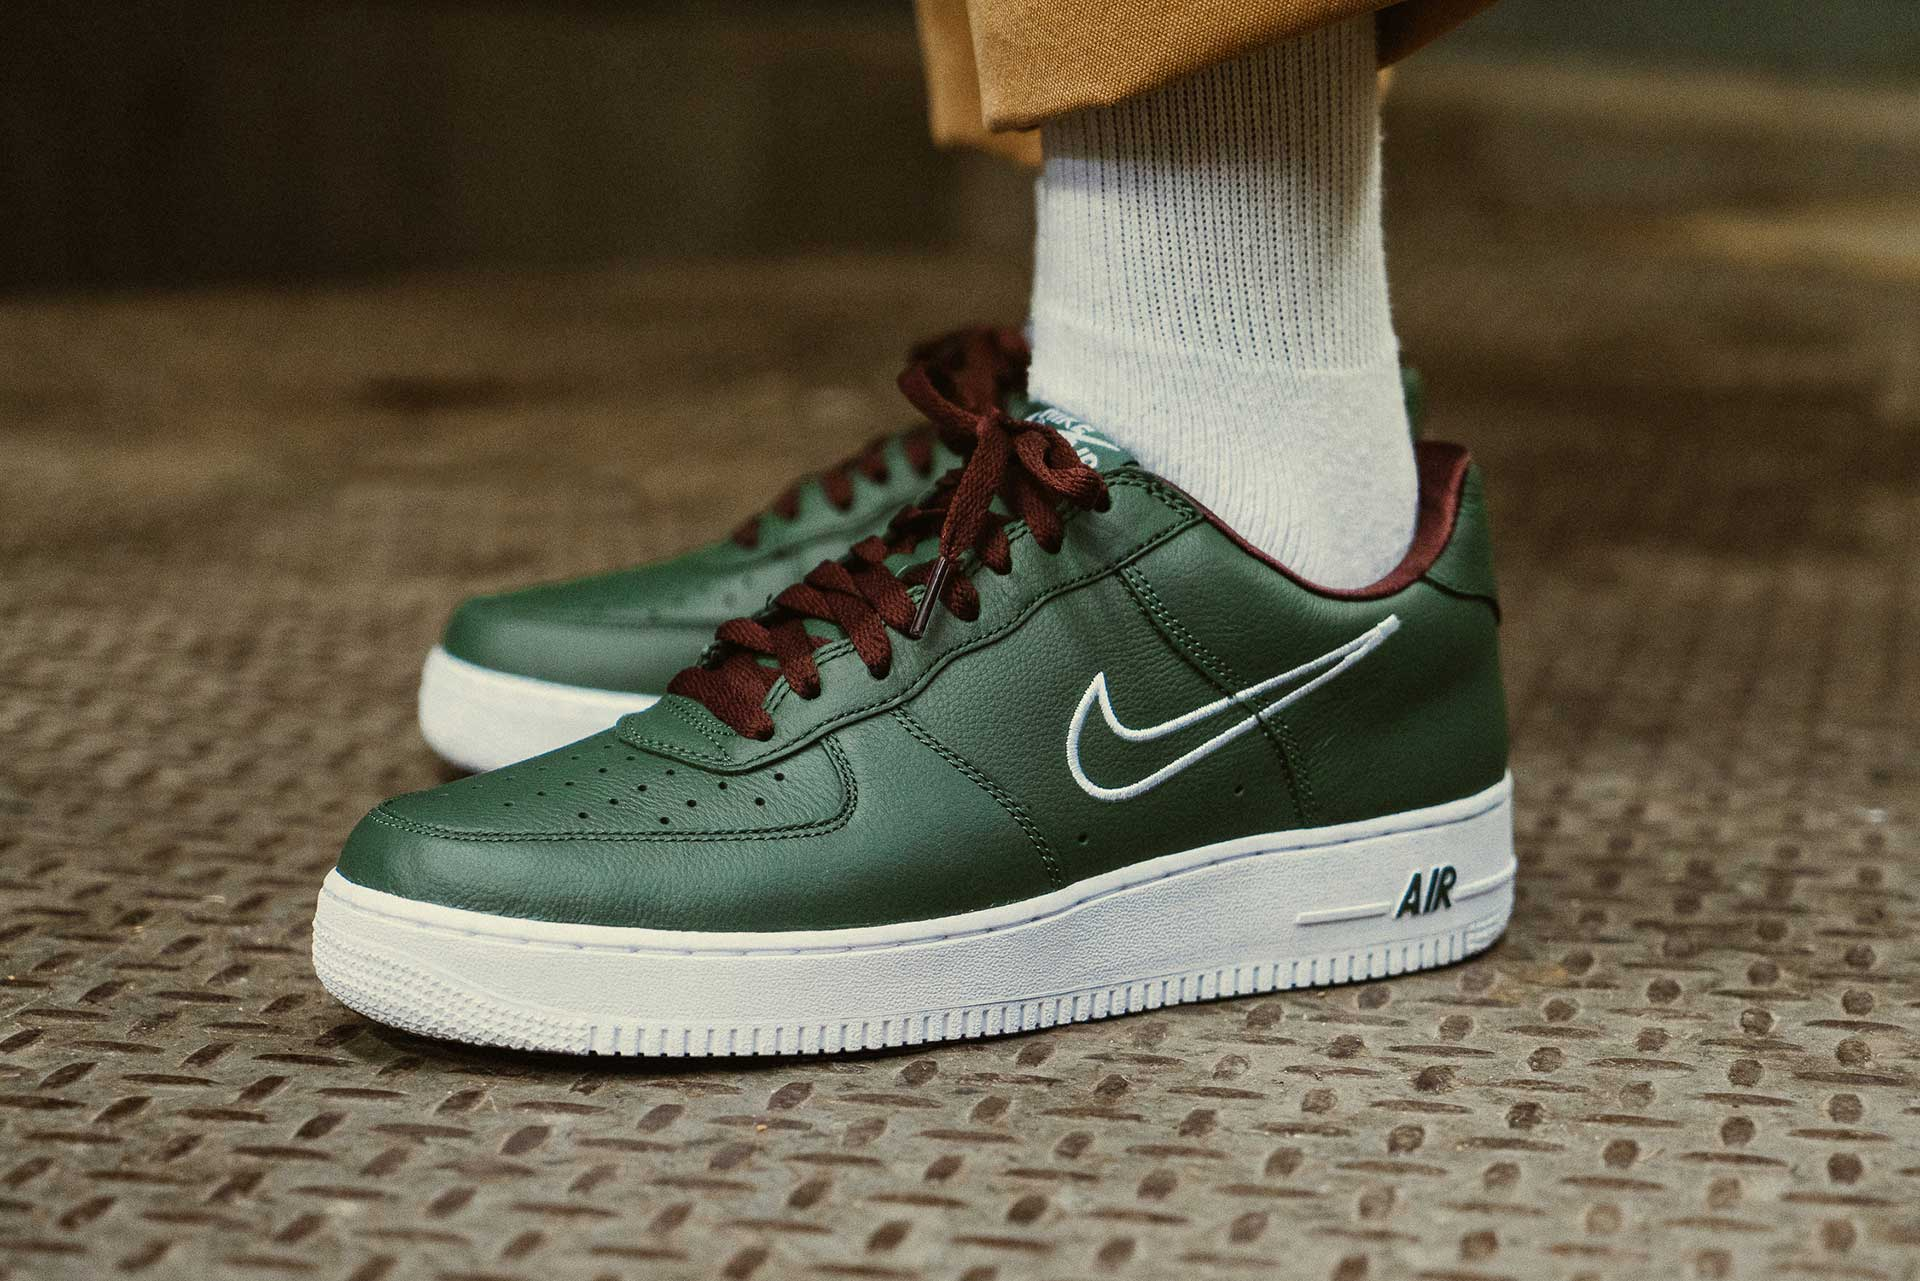 Air Force 1 Low Retro 'Hong Kong' in Deep Forest at Notre